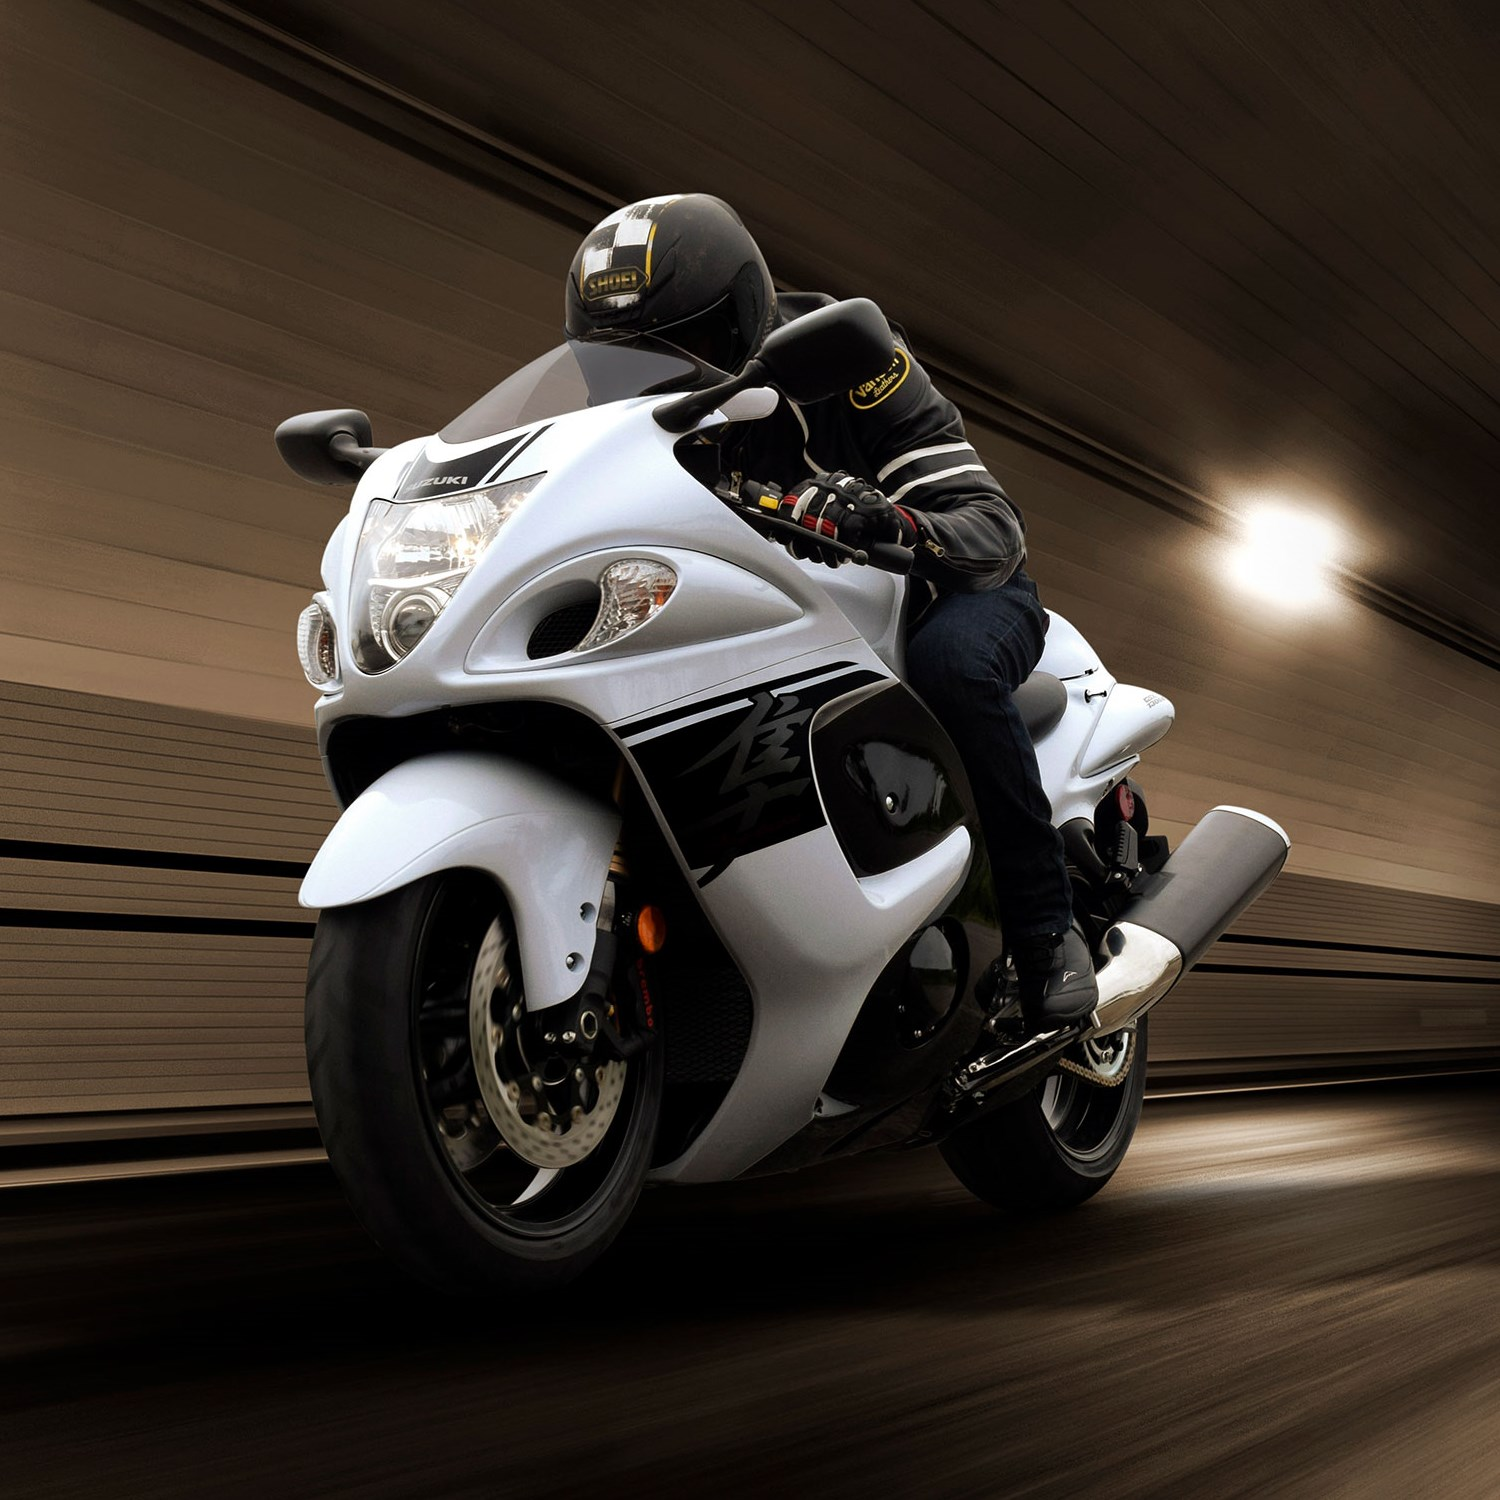 Suzuki Hayabusa Bike - Chelsea Motorcycles Group